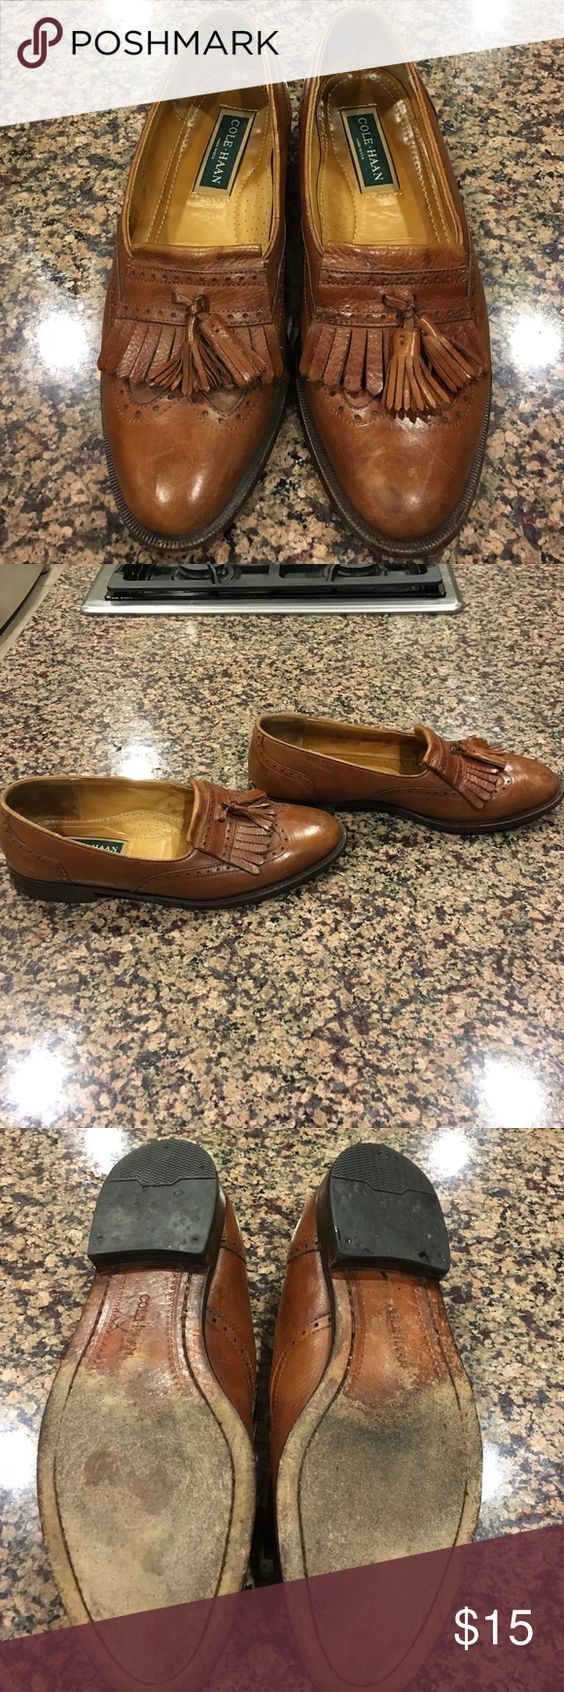 Cole haan loafers Brown cole haan loafers. Cole Haan Shoes Flats & Loafers